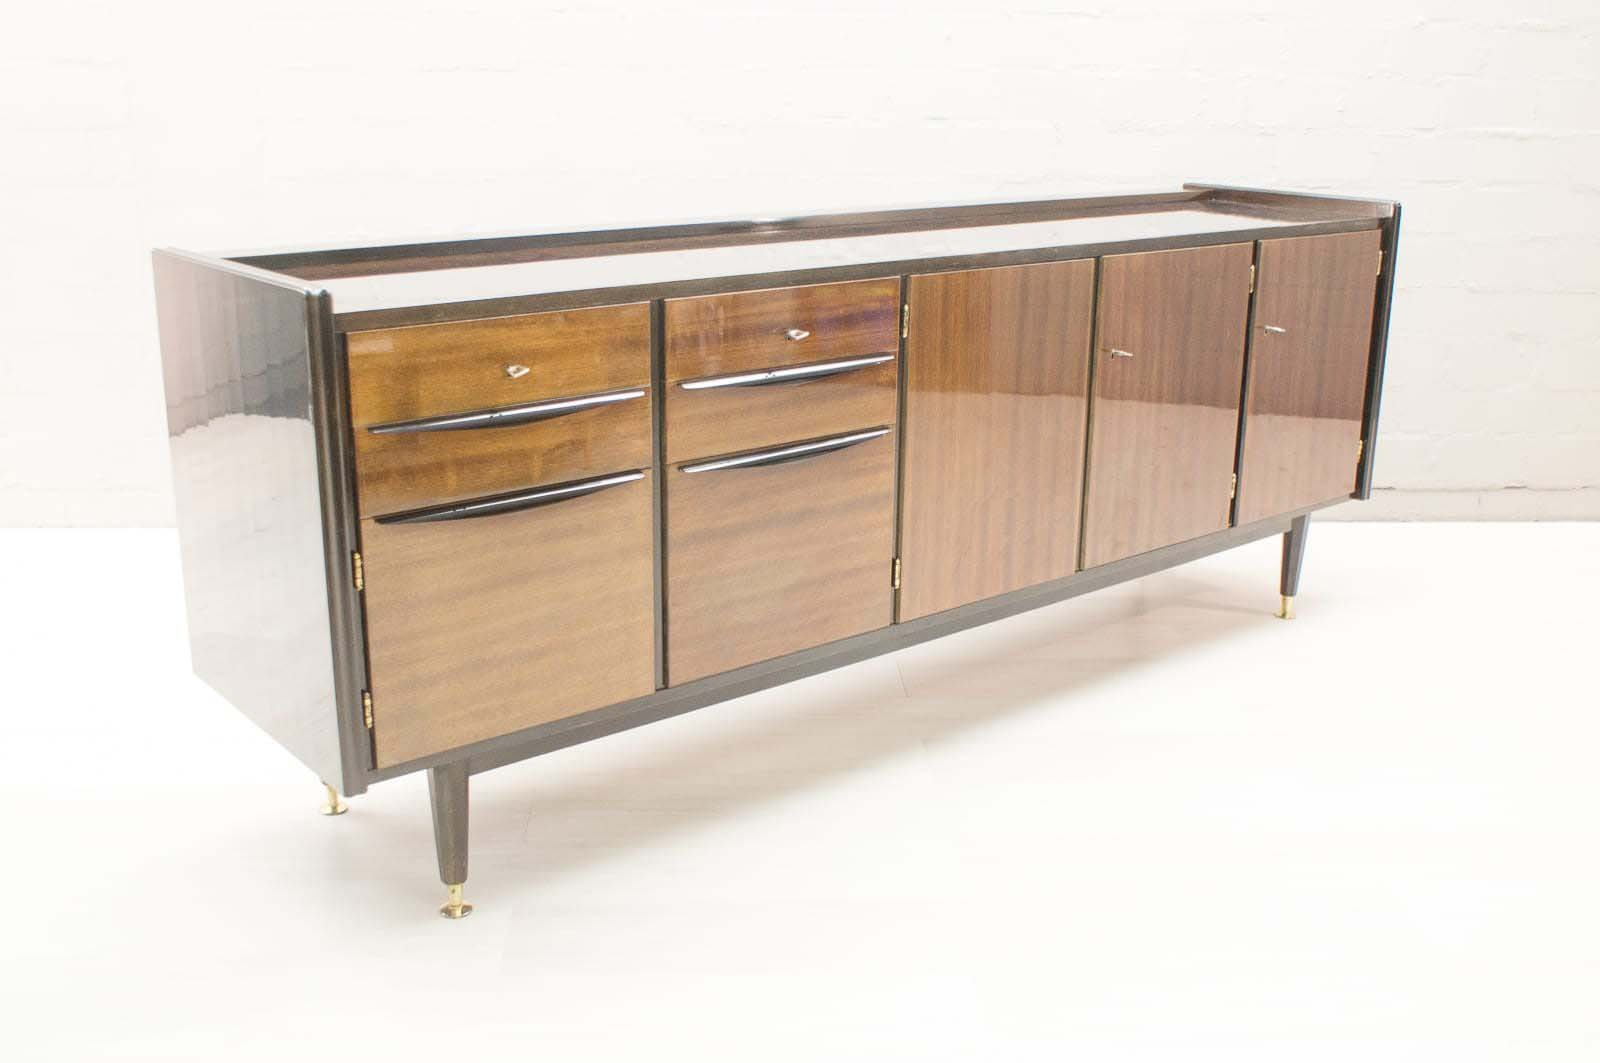 gro es mid century sideboard mit beleuchteter bar bei. Black Bedroom Furniture Sets. Home Design Ideas